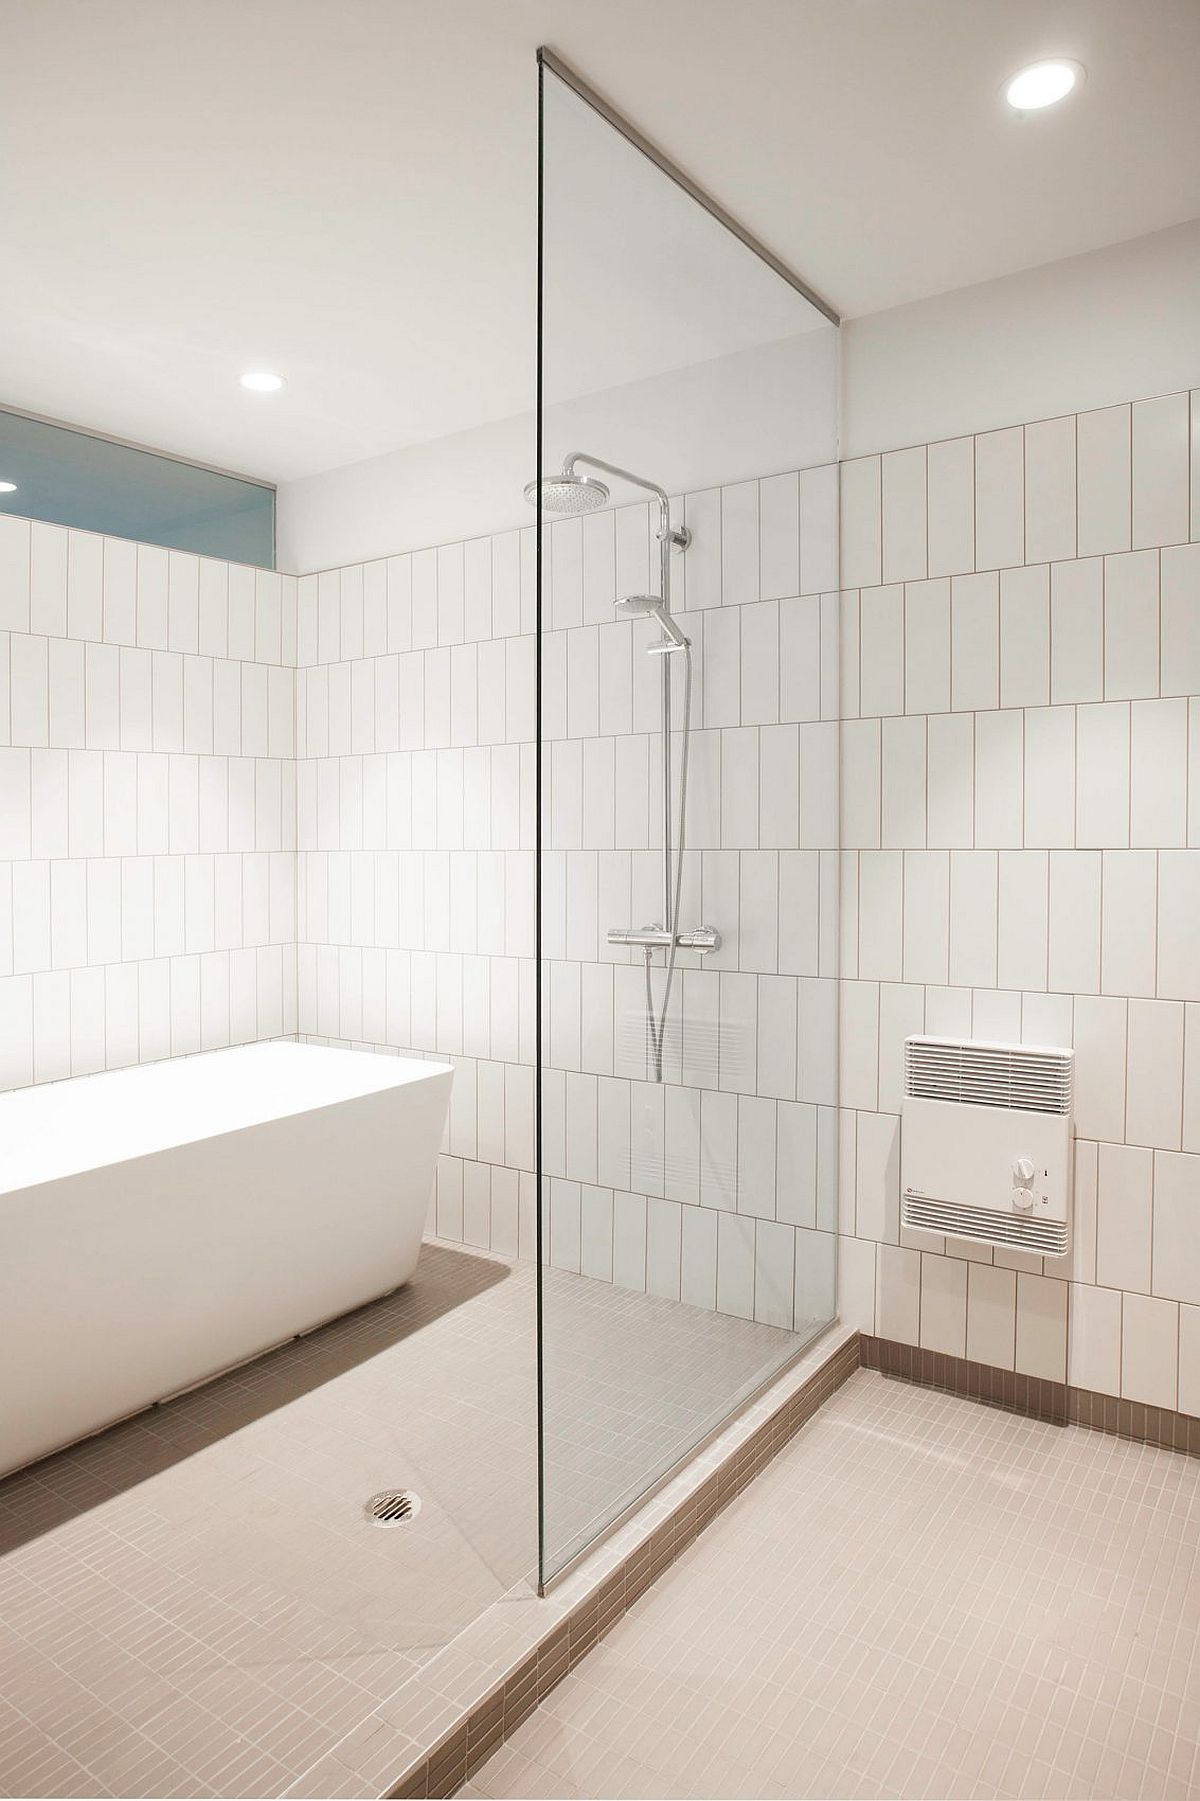 Stylish and simple modern bathroom design in white with thermal flooring